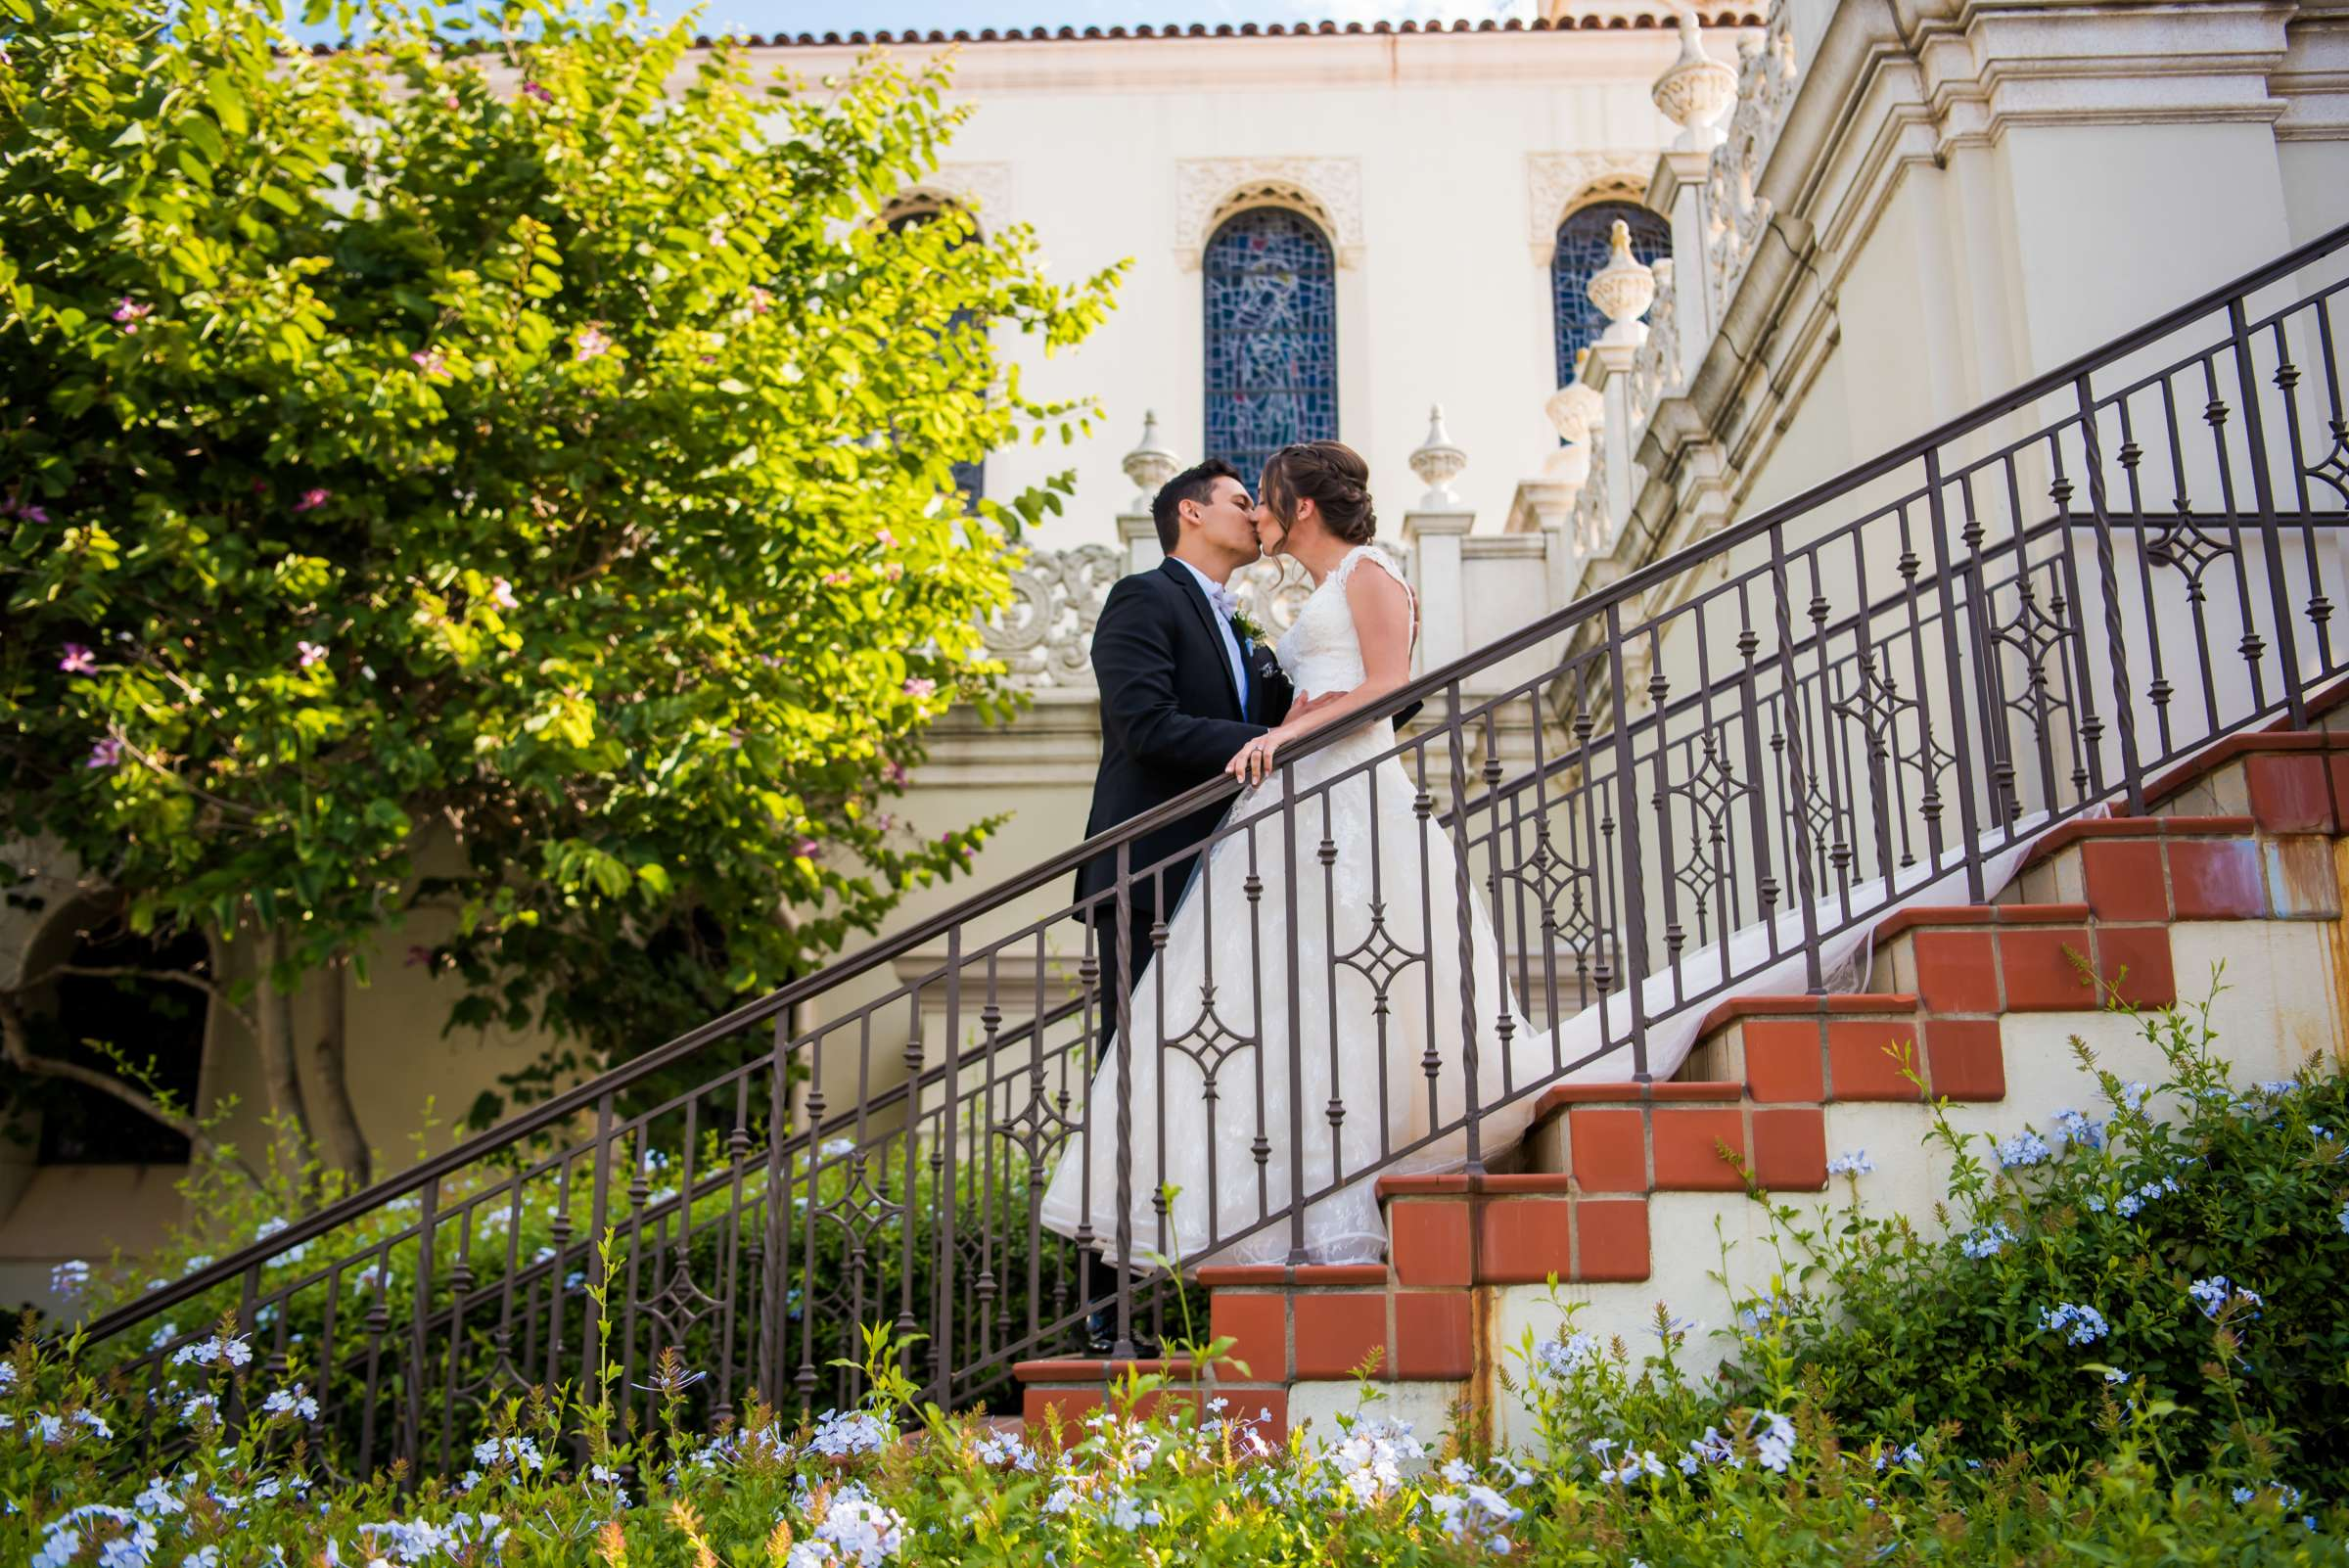 The Immaculata Wedding, Arianna and Jonah Wedding Photo #70 by True Photography